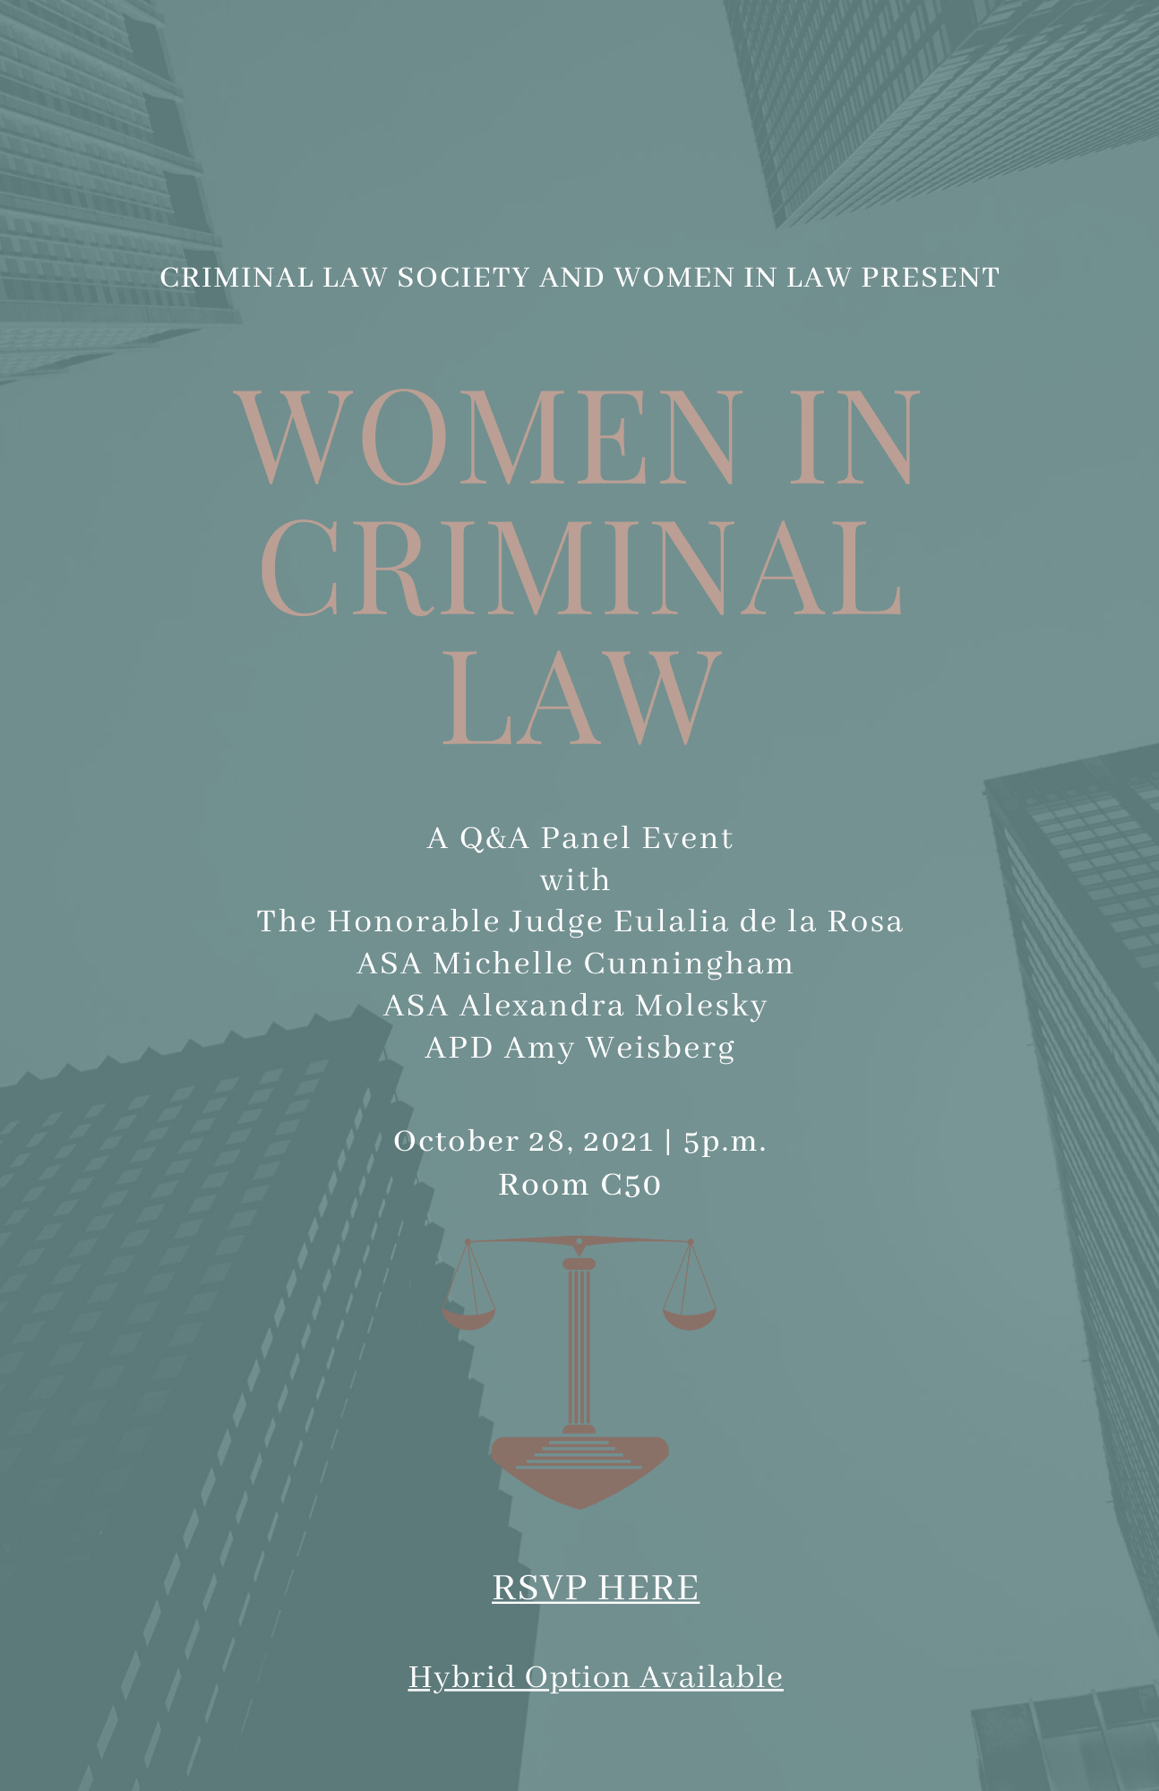 Event flyer: Women in Criminal Law event on October 25, 2021 at 5pm